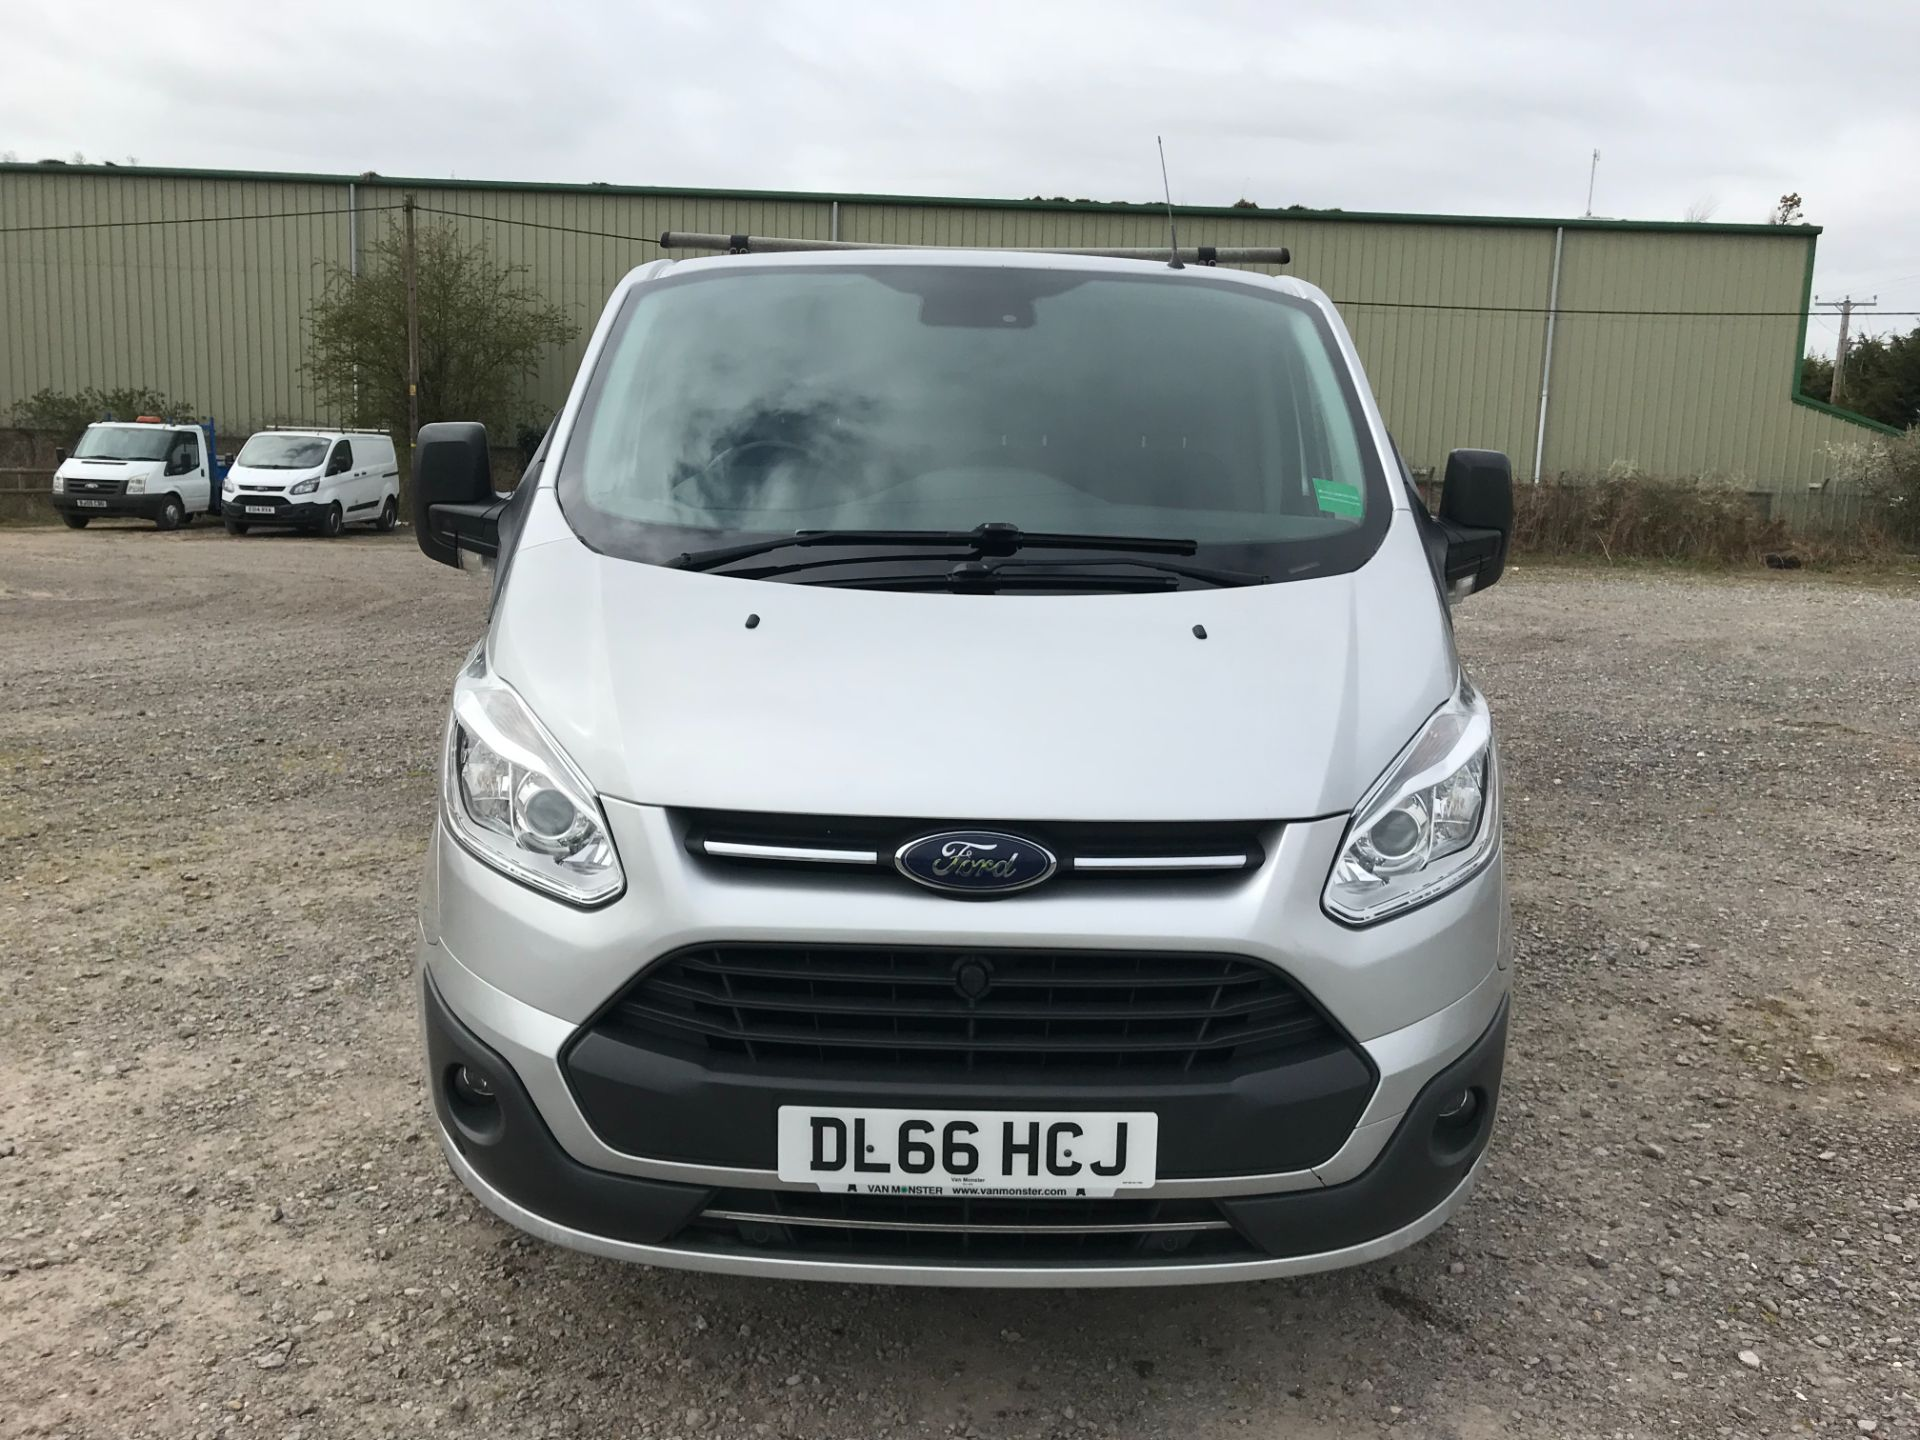 2016 Ford Transit Custom 270 L1 DIESEL FWD 2.0 TDCI 130PS LOW ROOF TREND VAN EURO 6 (DL66HCJ) Image 2